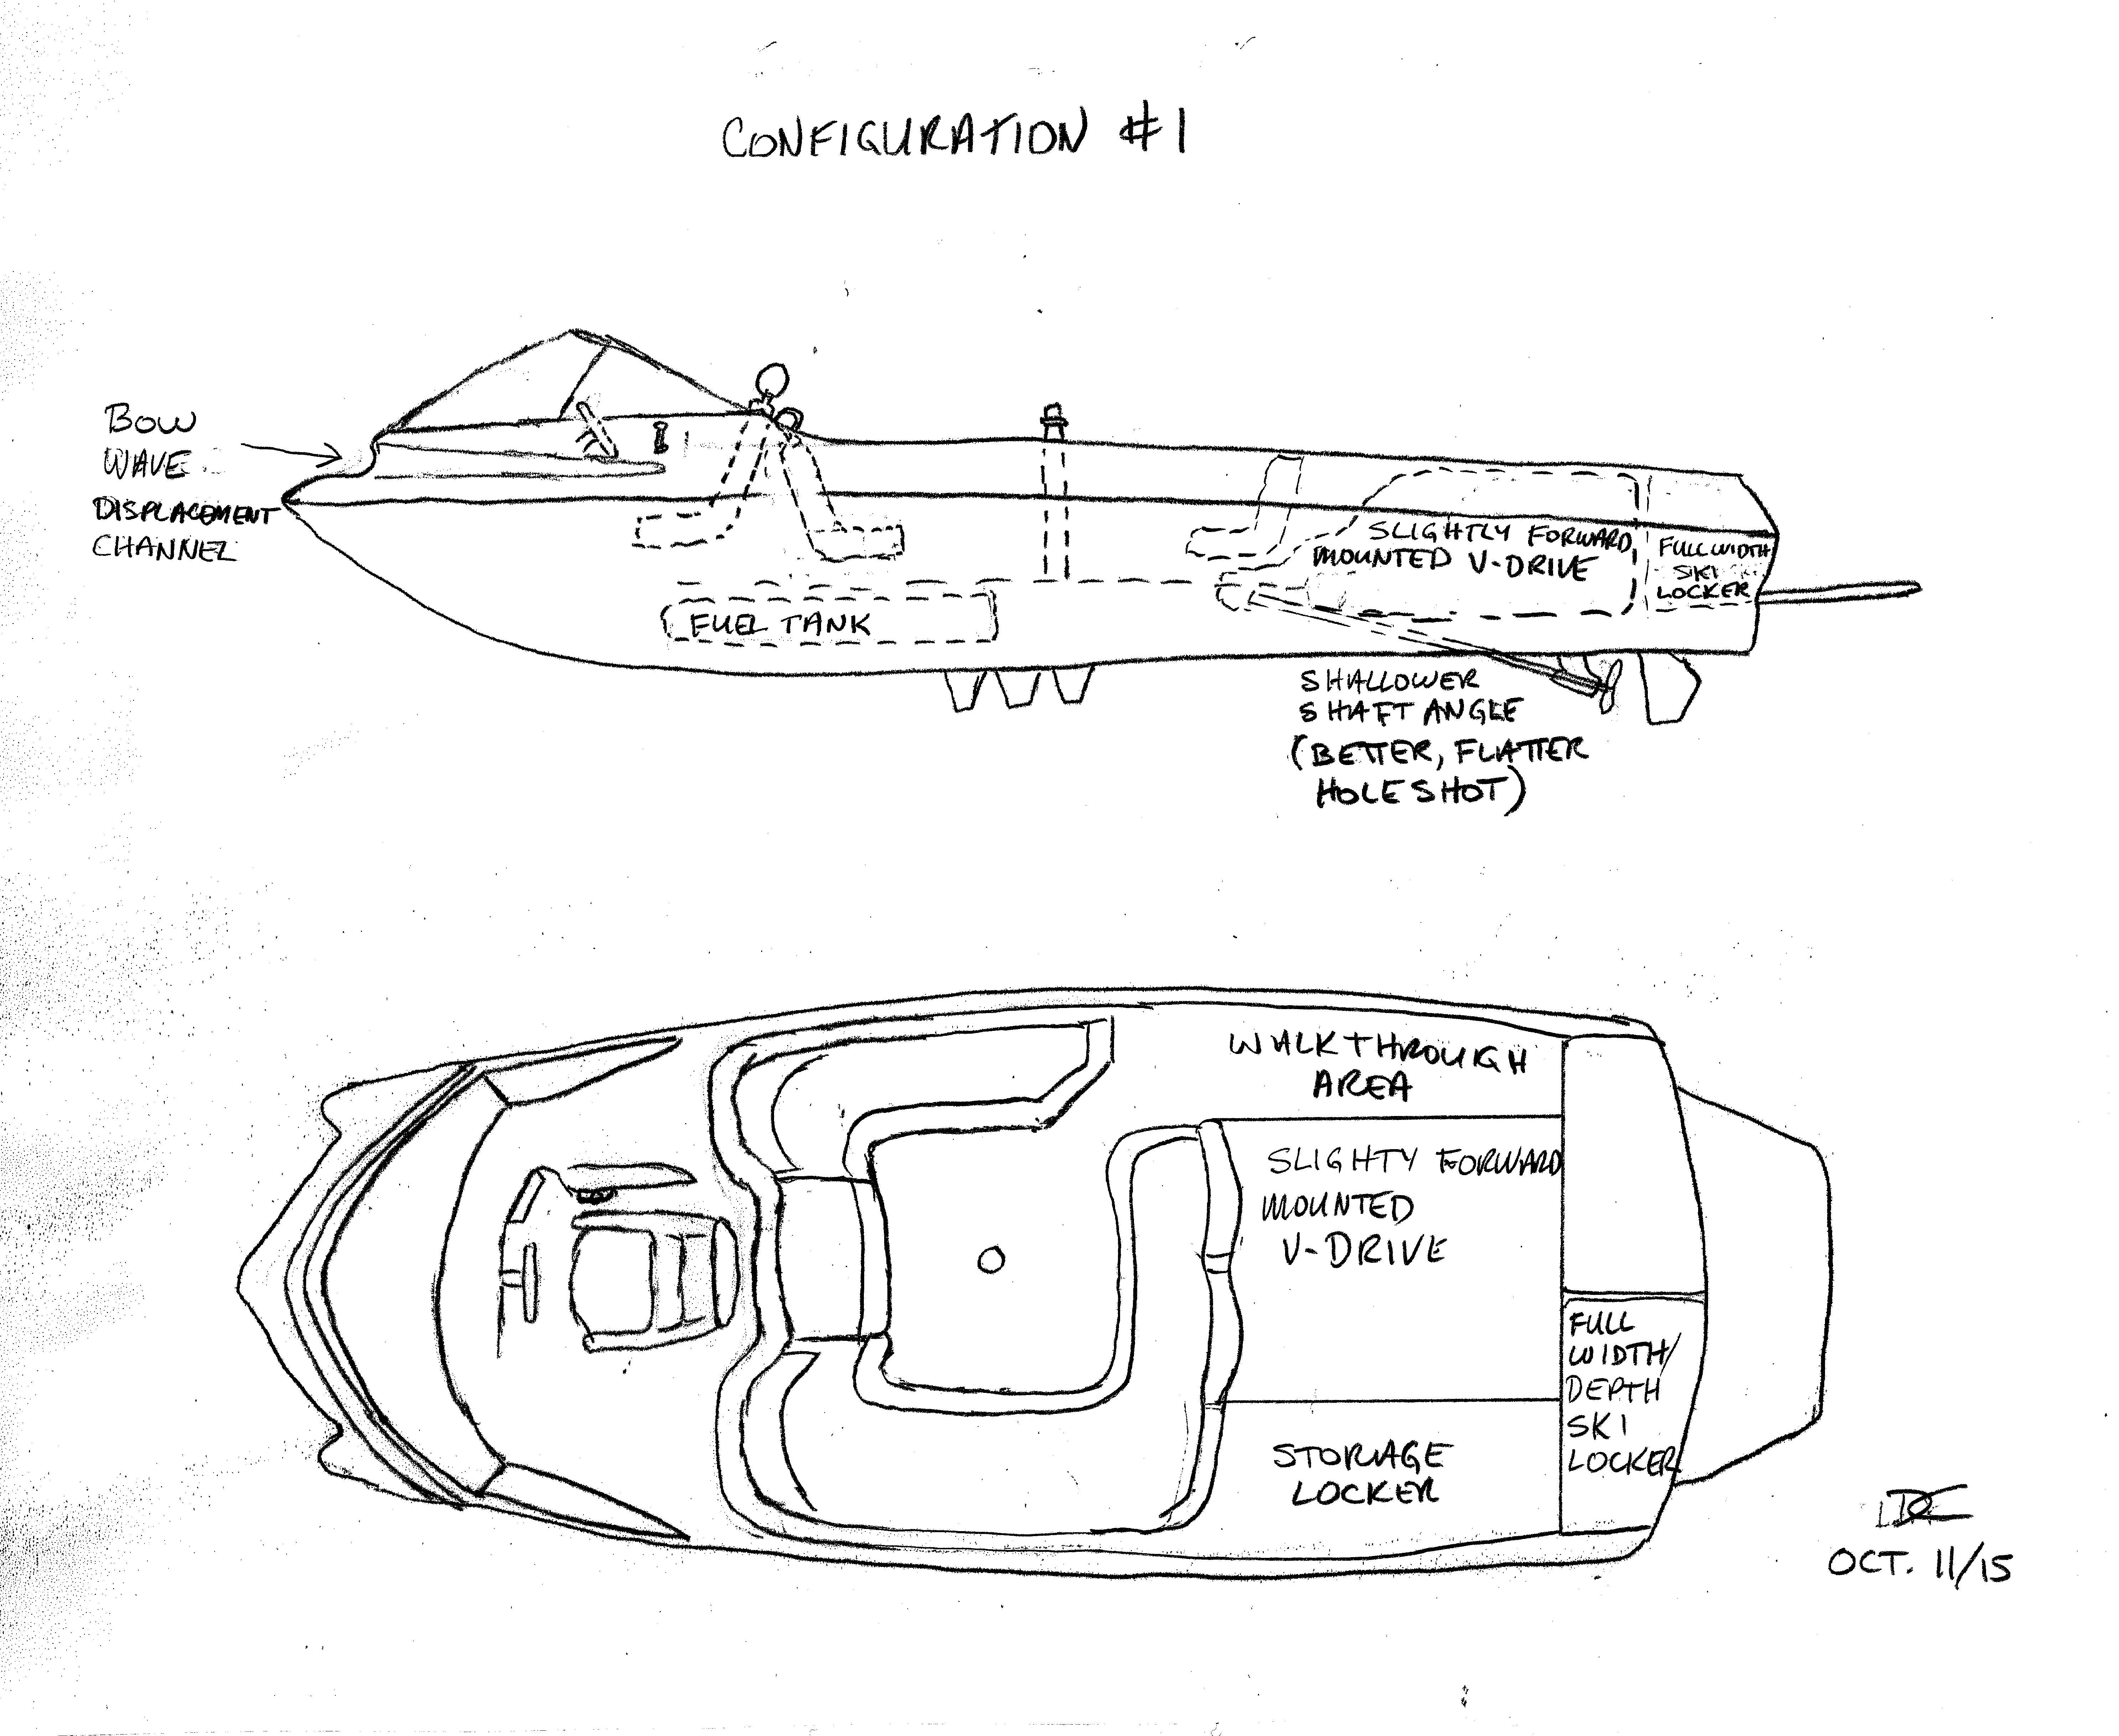 Slalom Boat with center/forward driving position